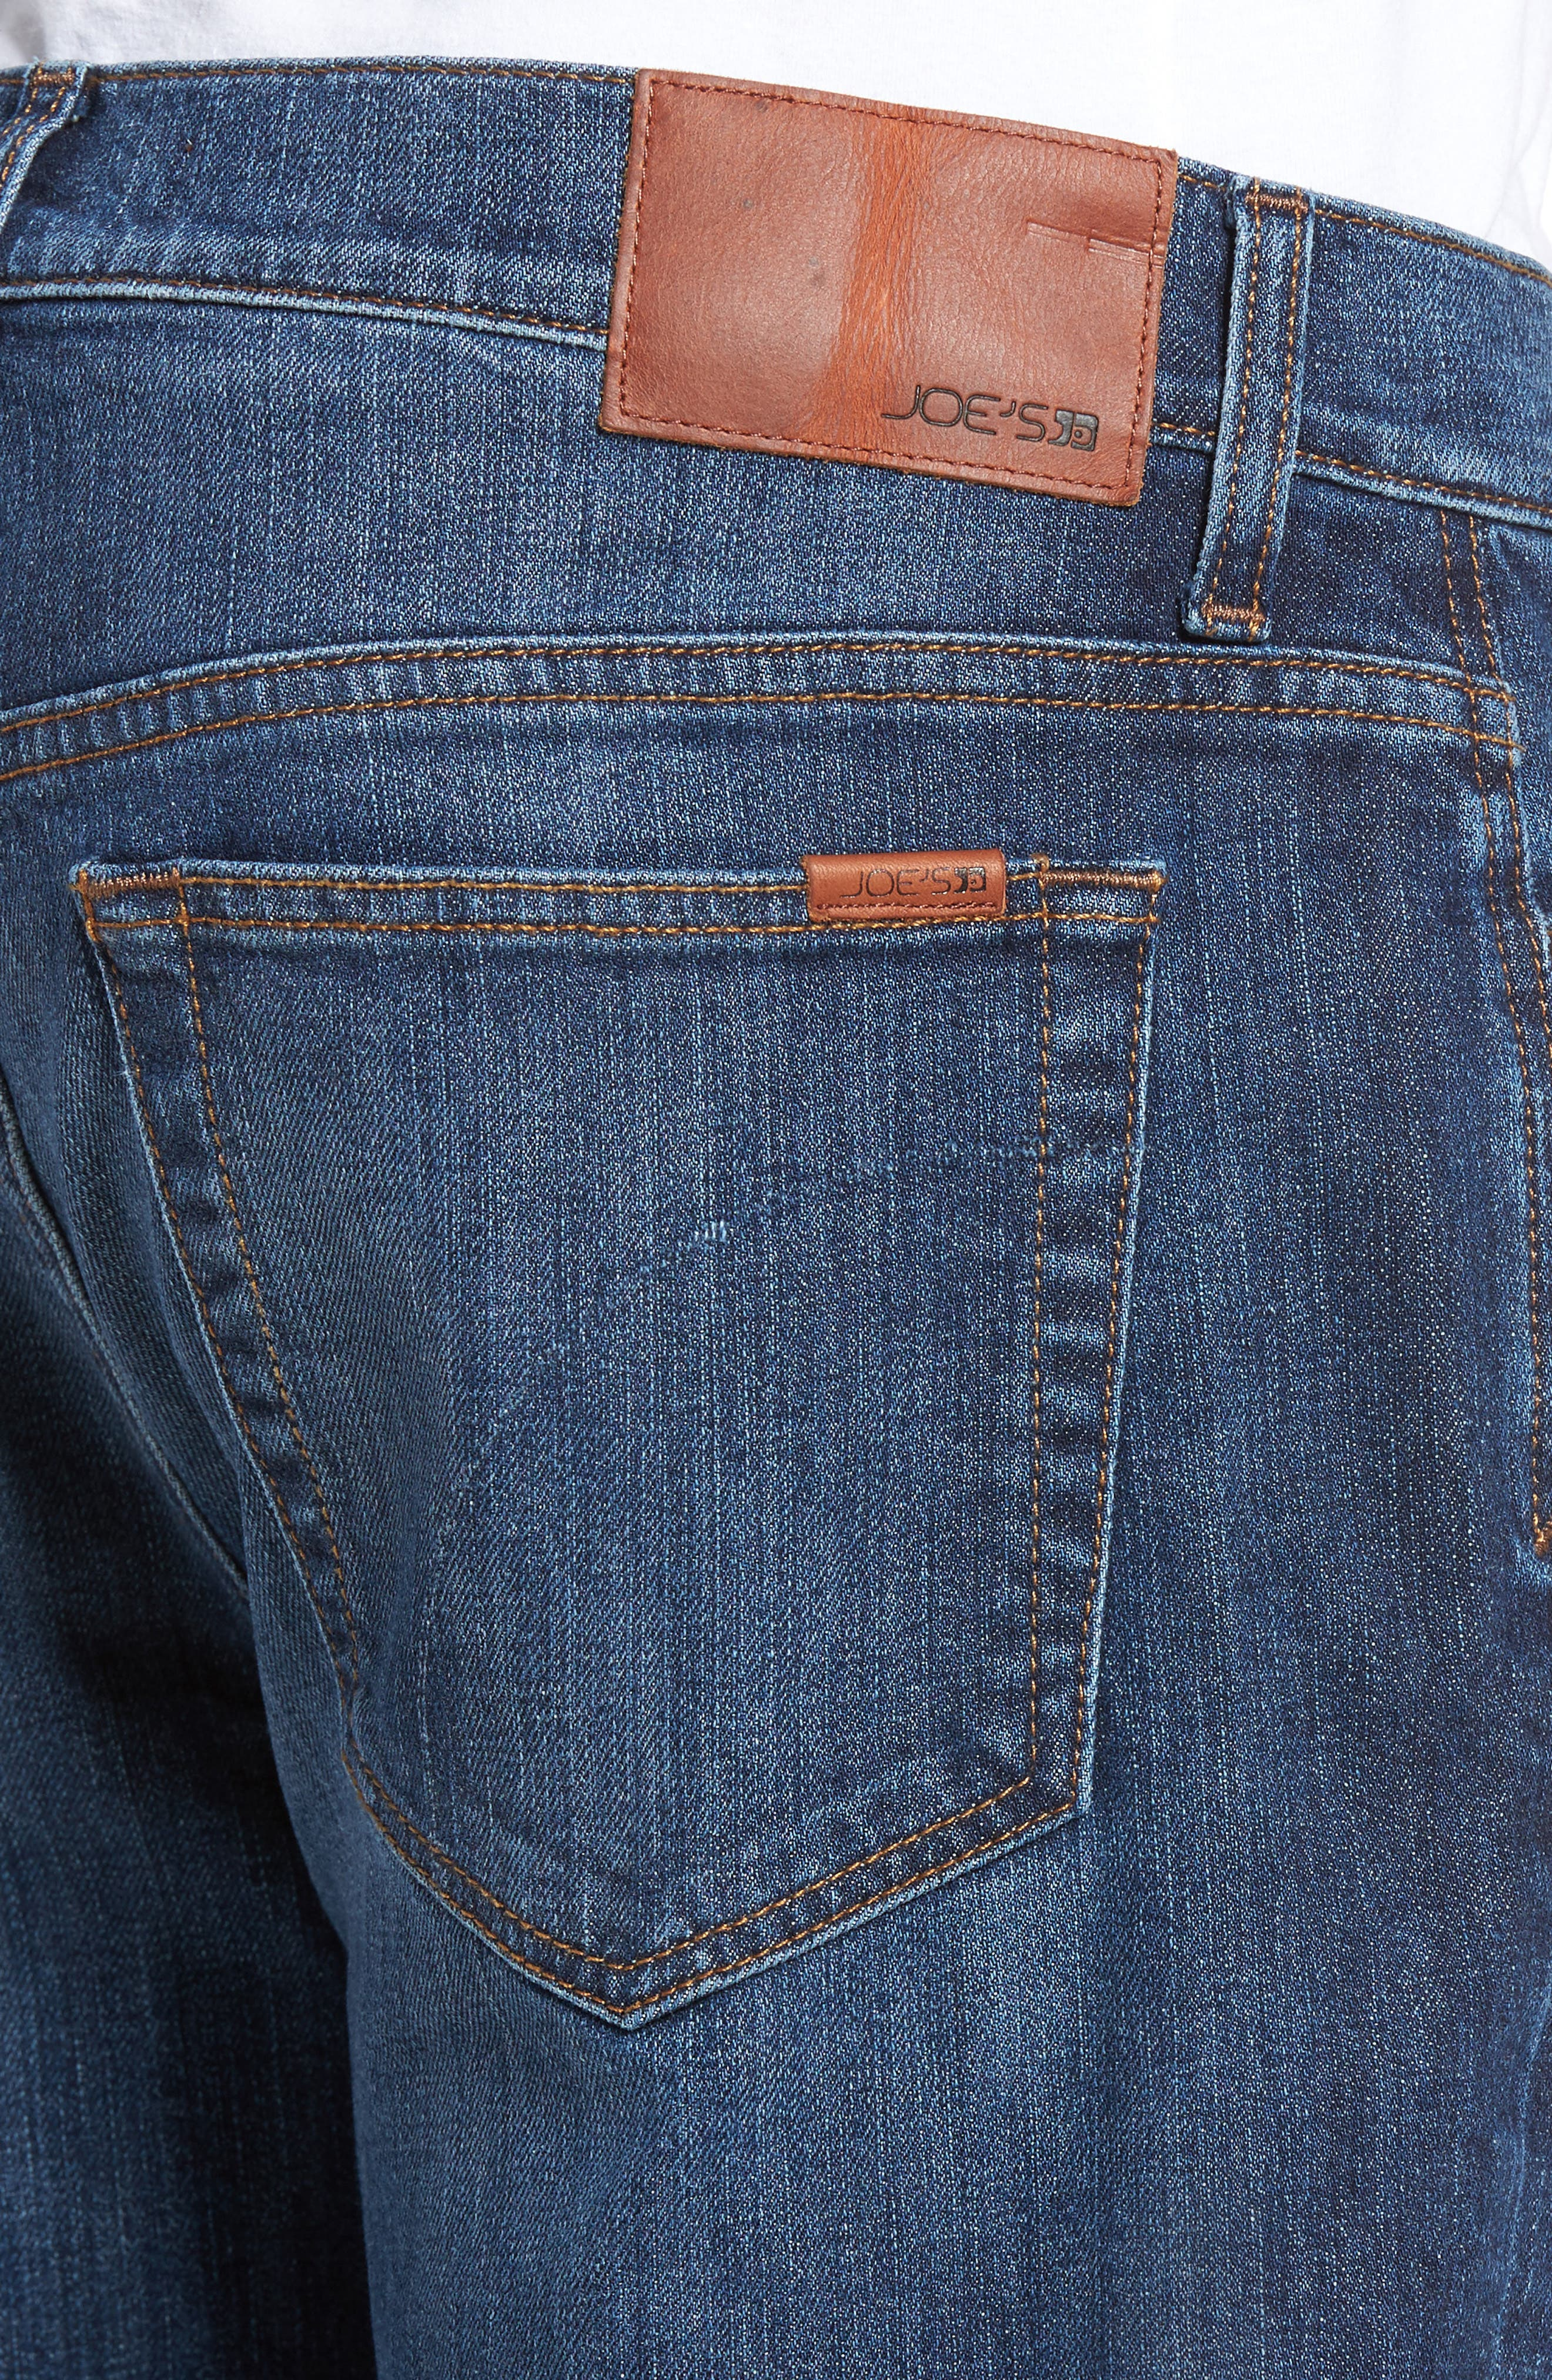 Classic Straight Fit Jeans,                             Alternate thumbnail 4, color,                             DREXLER